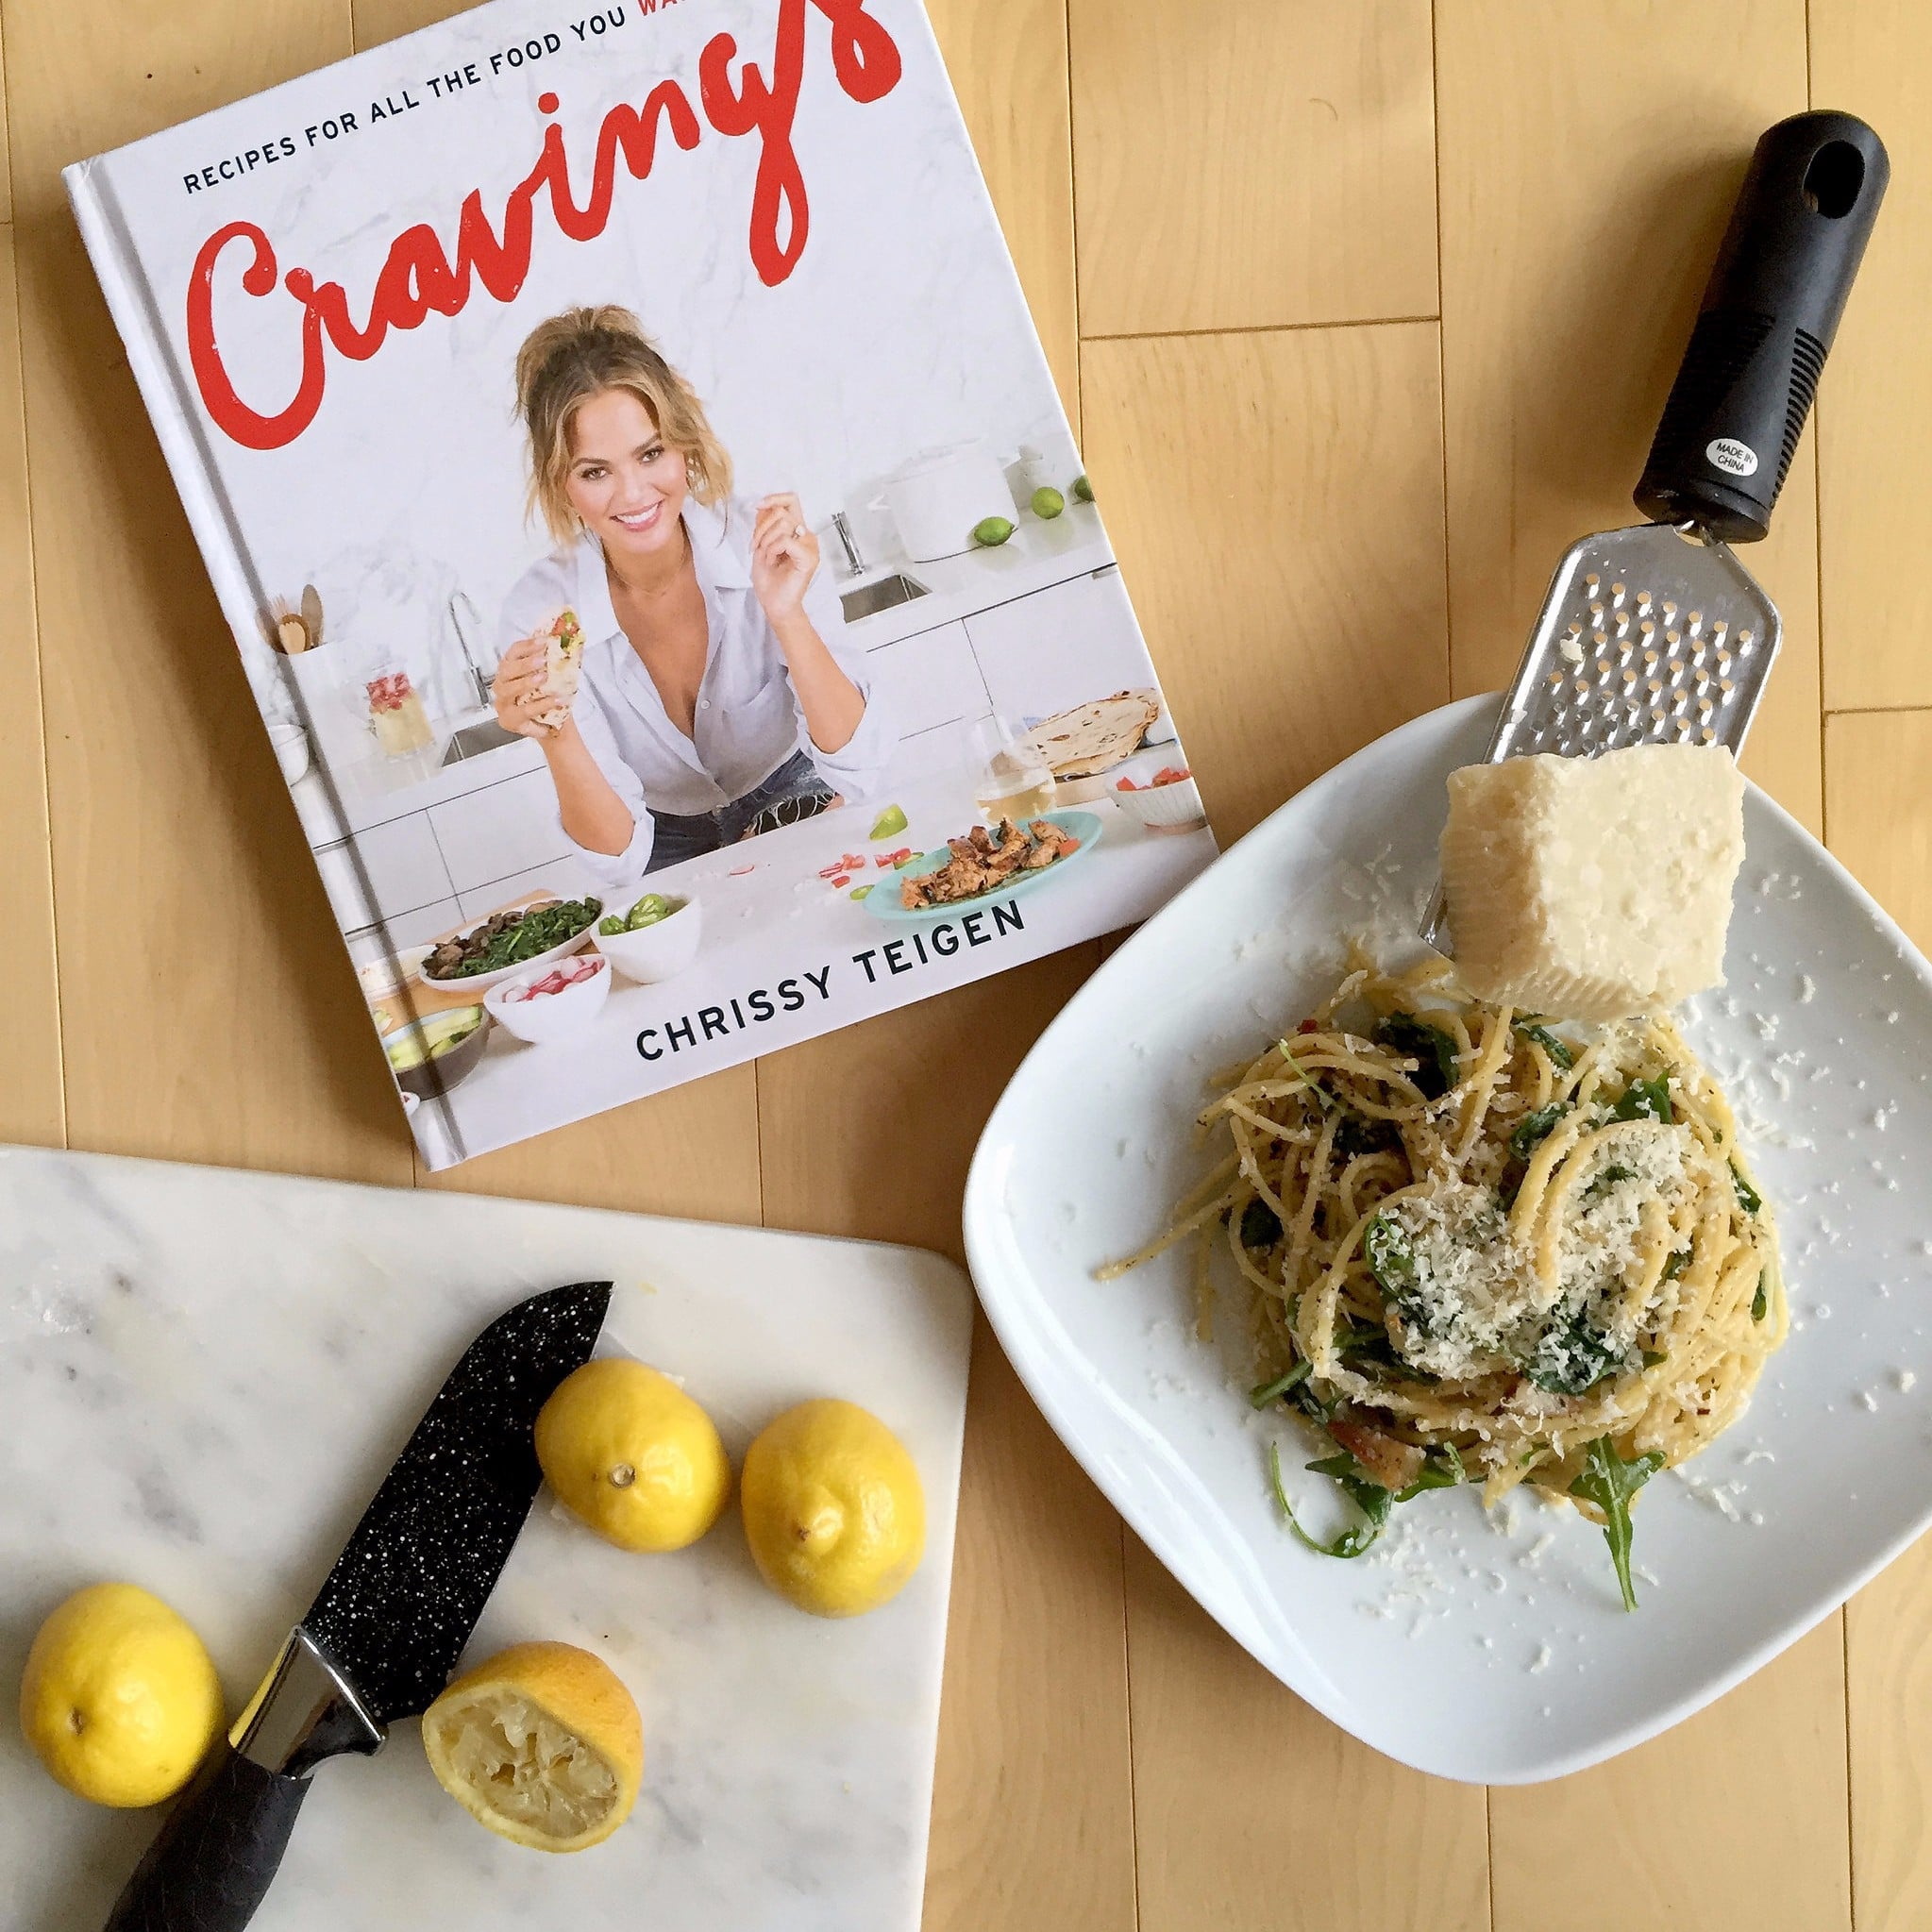 Celebrity chefs popsugar food chrissy teigens best recipes forumfinder Images